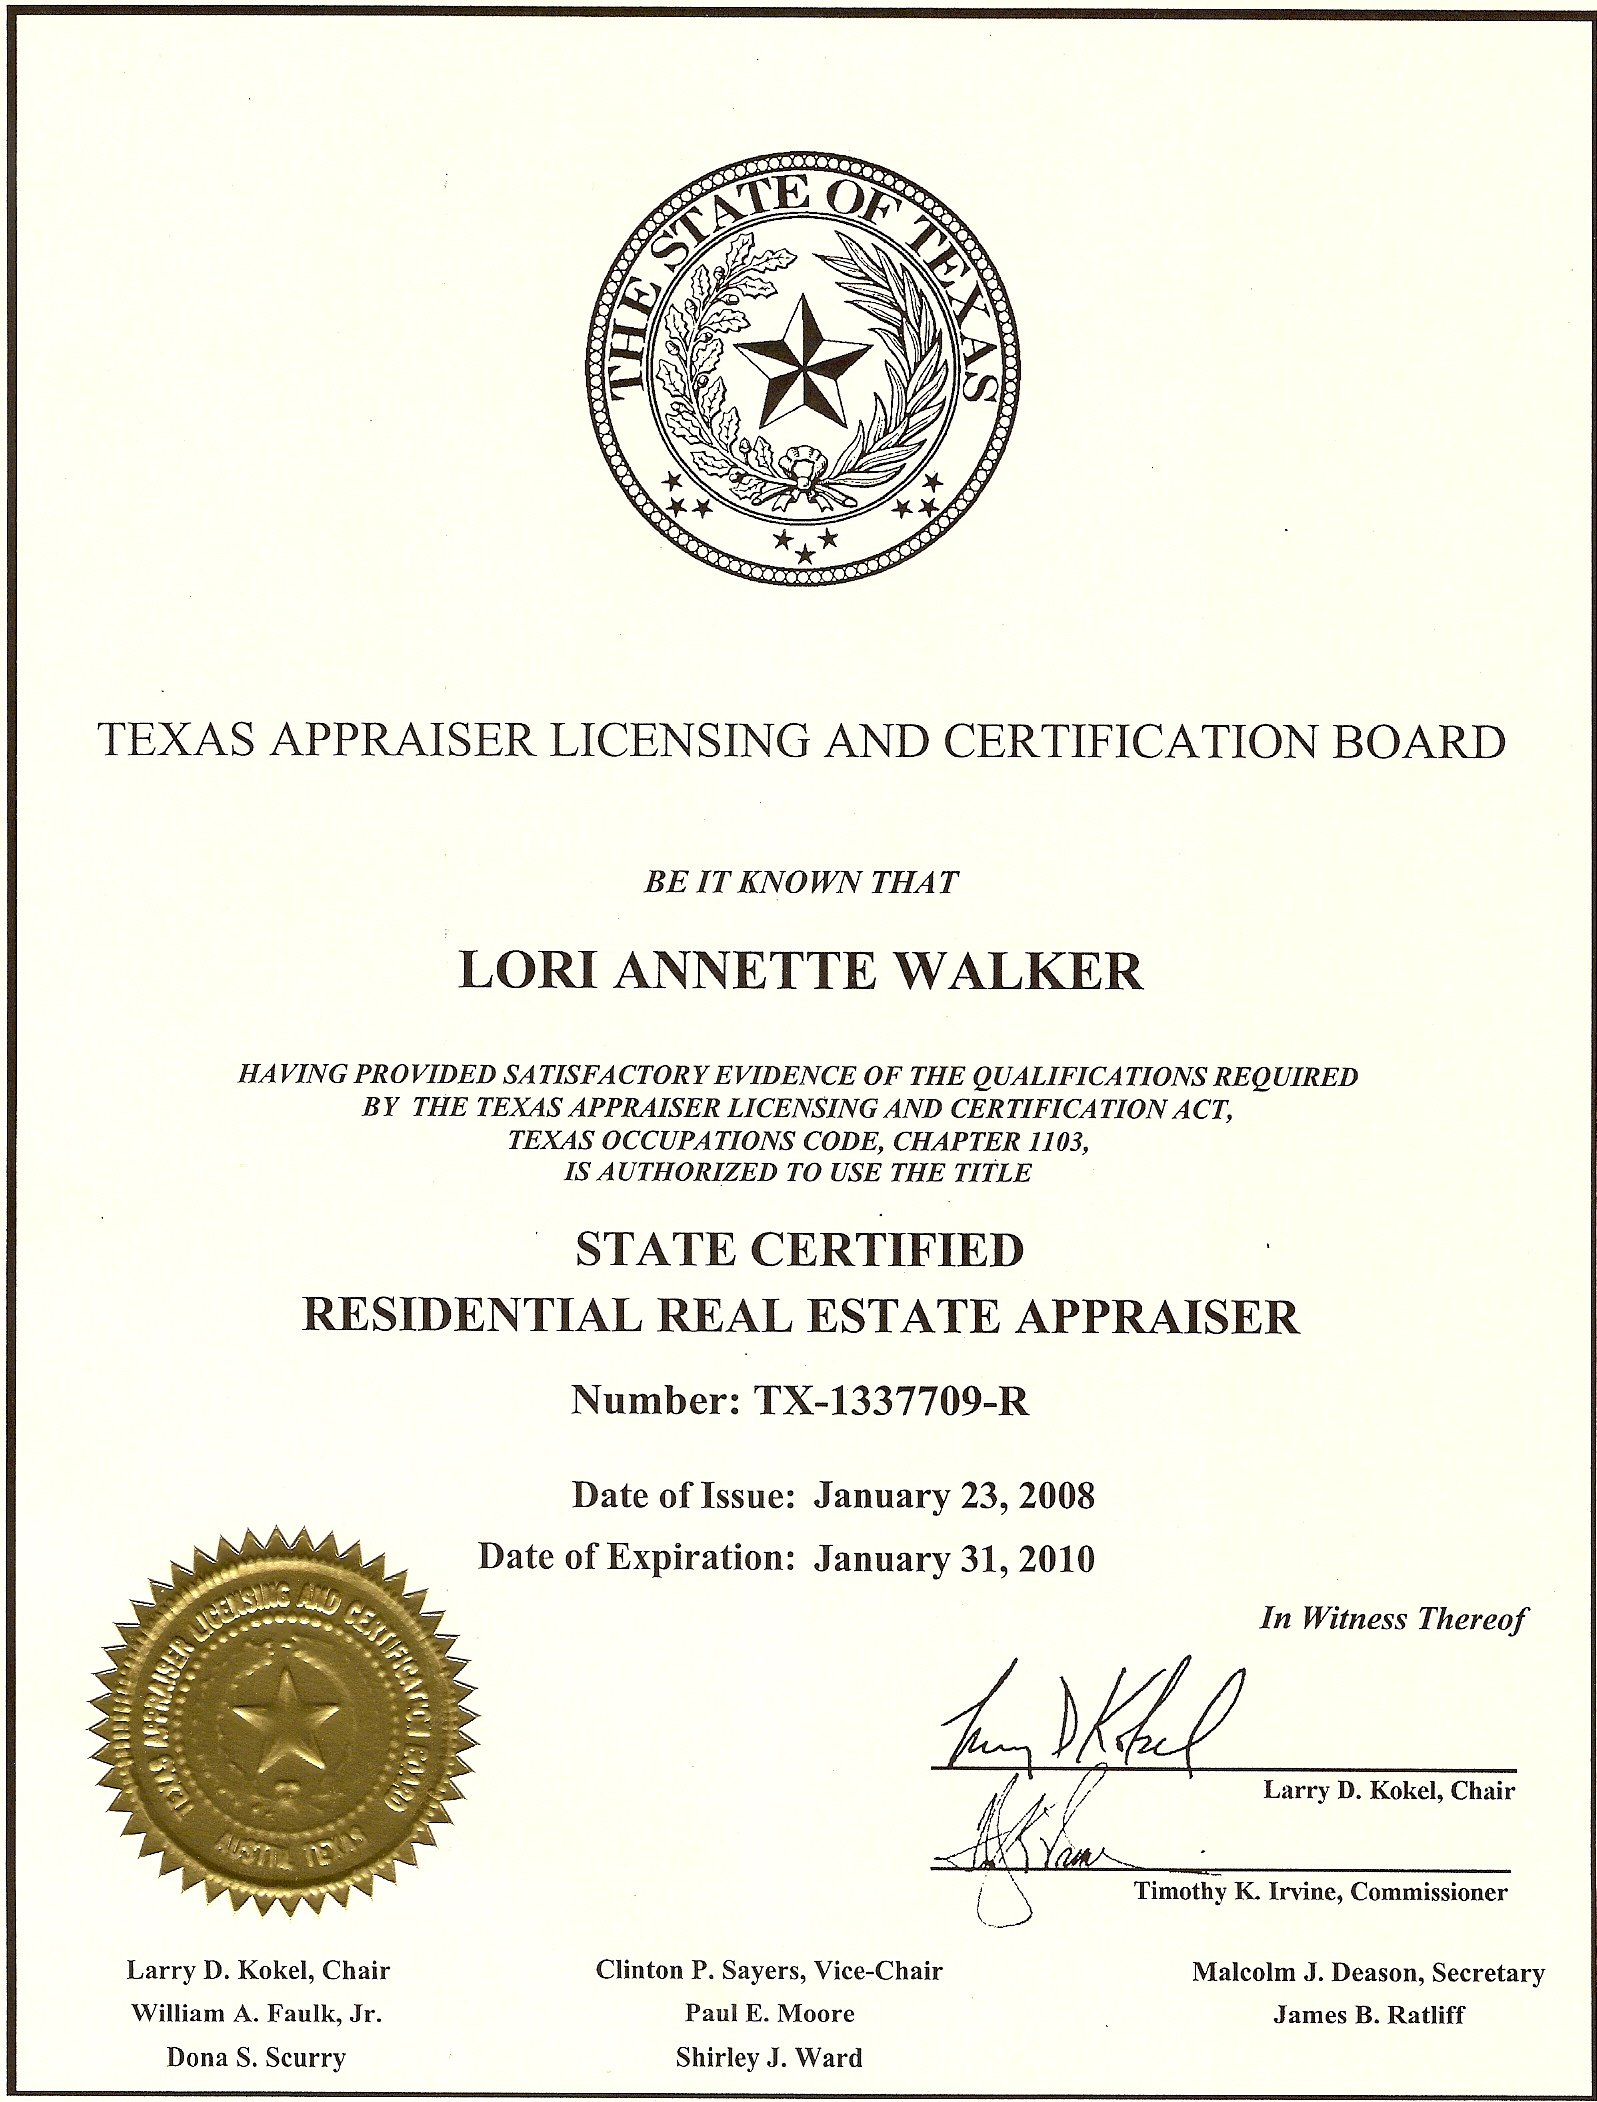 C2070-583 Free Demo Questions and Answers